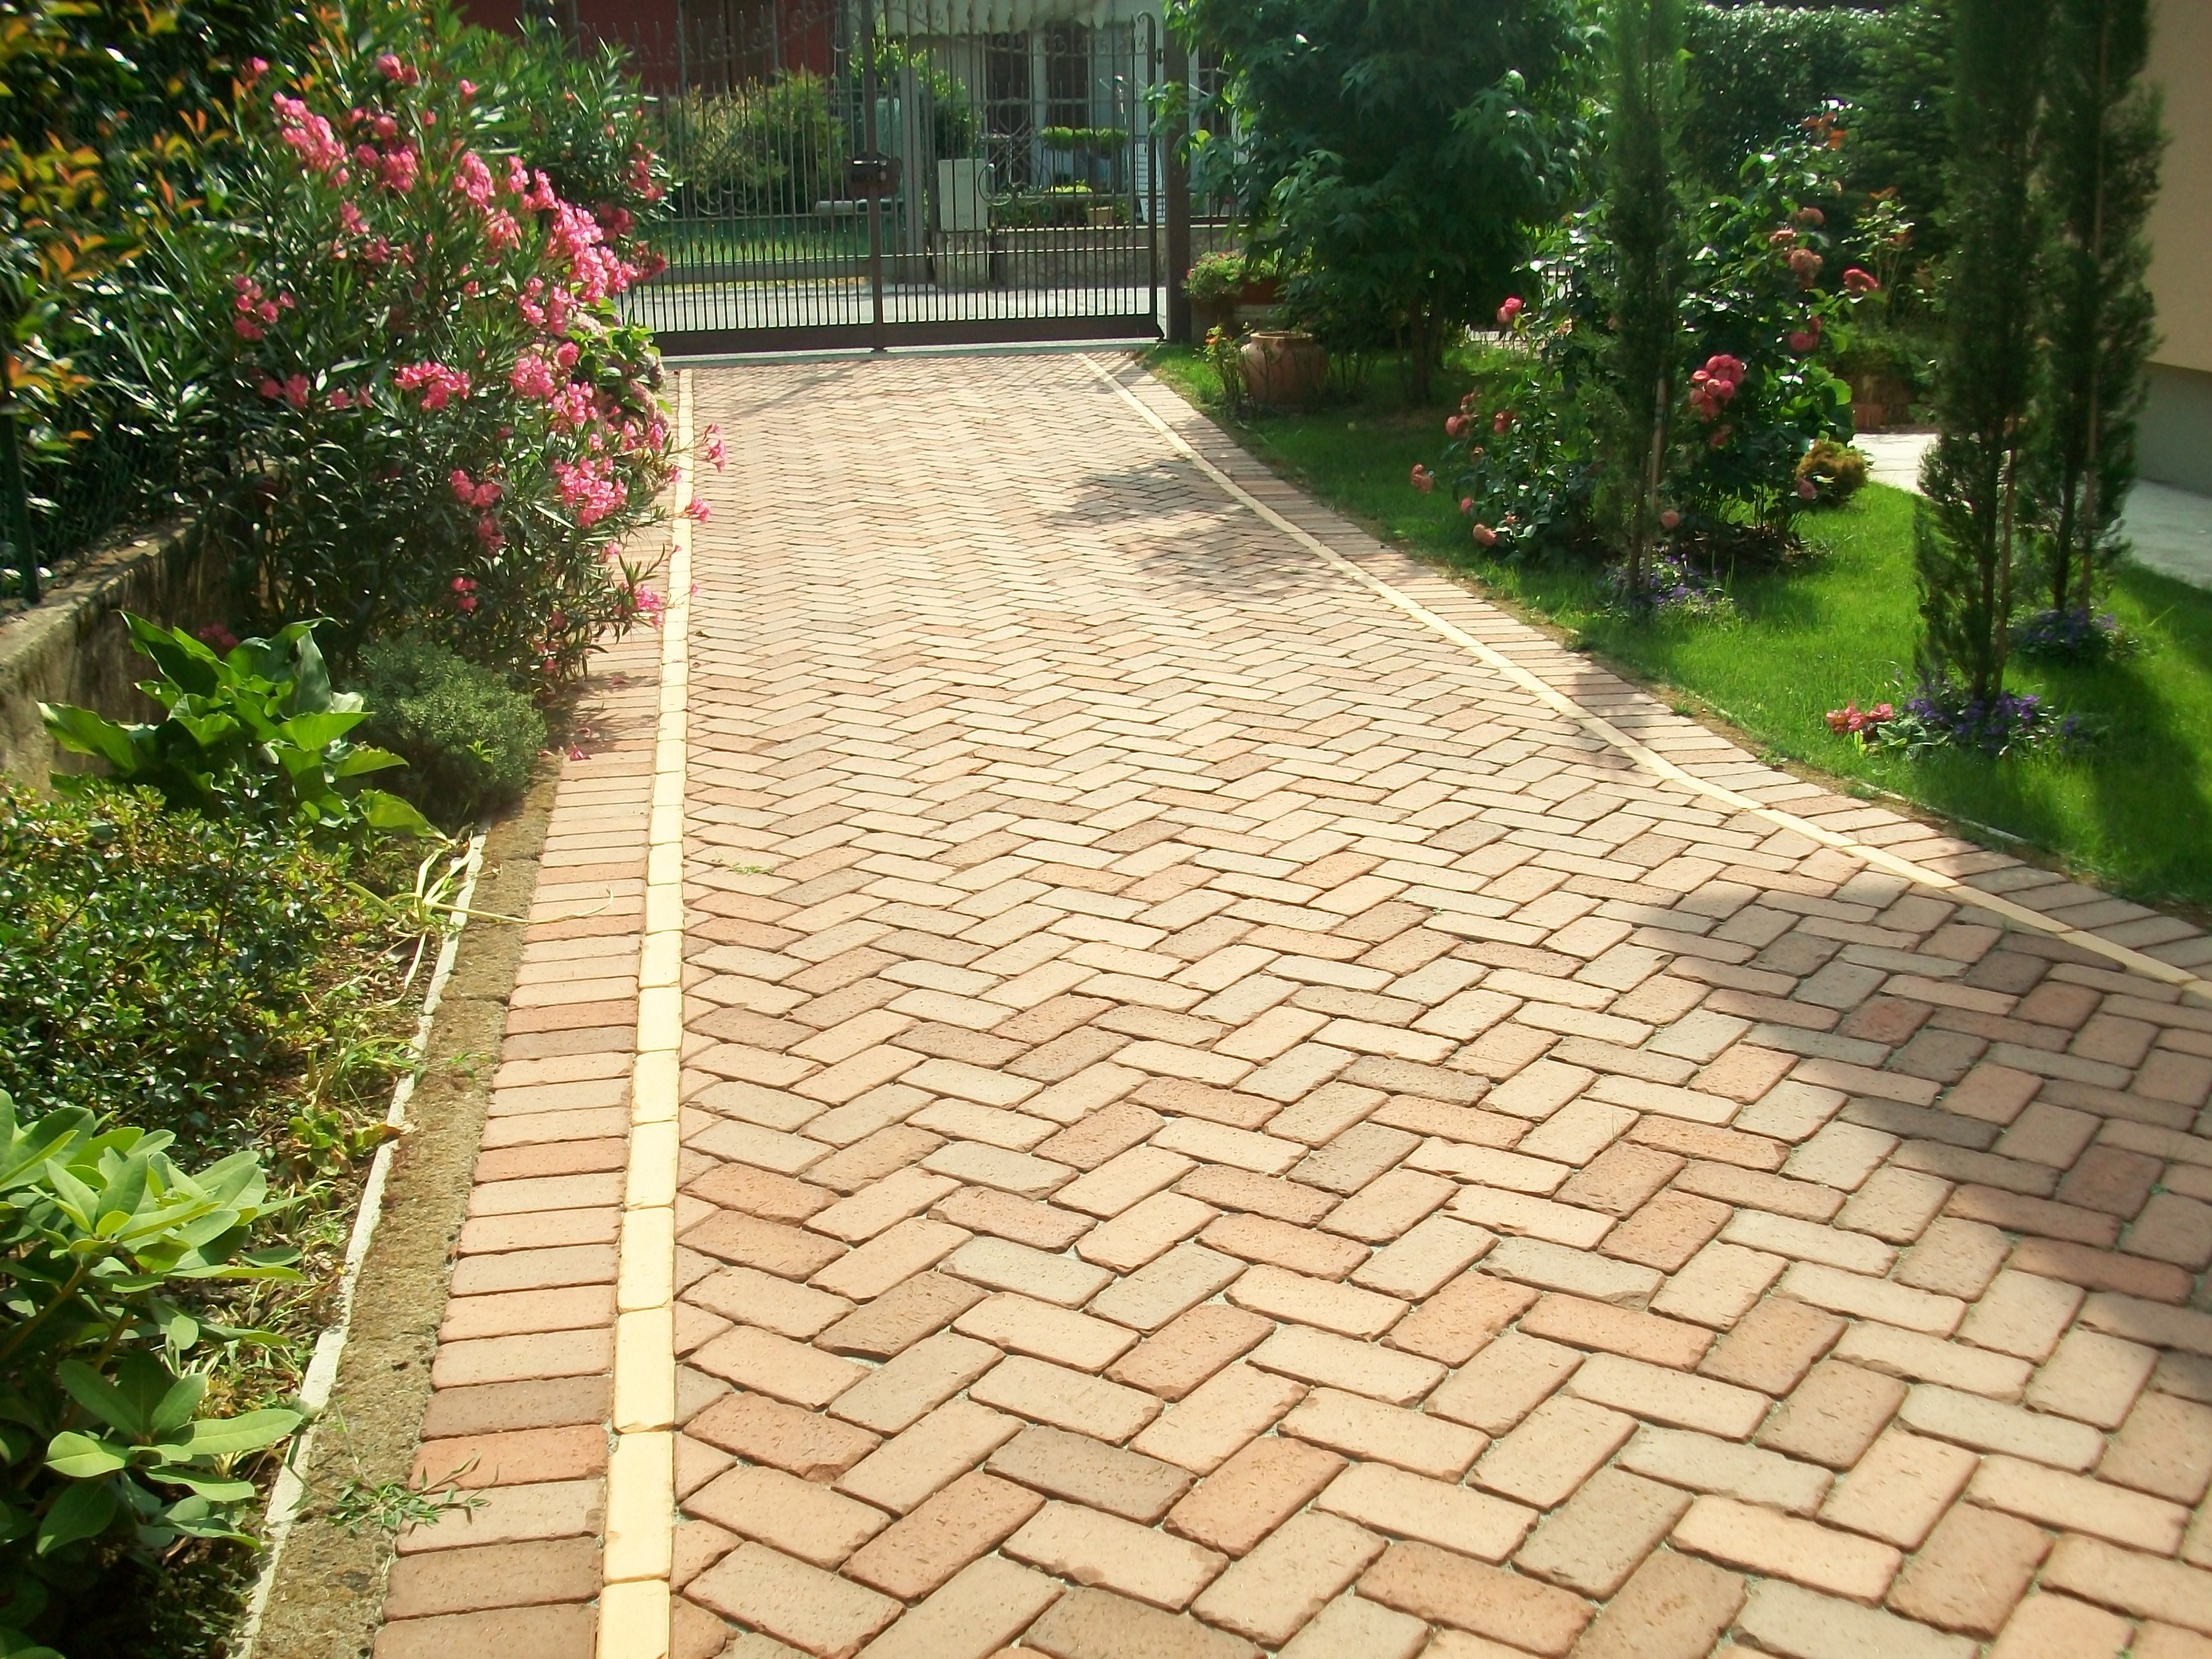 clay pavers - bioecological material -  Entrance walkway